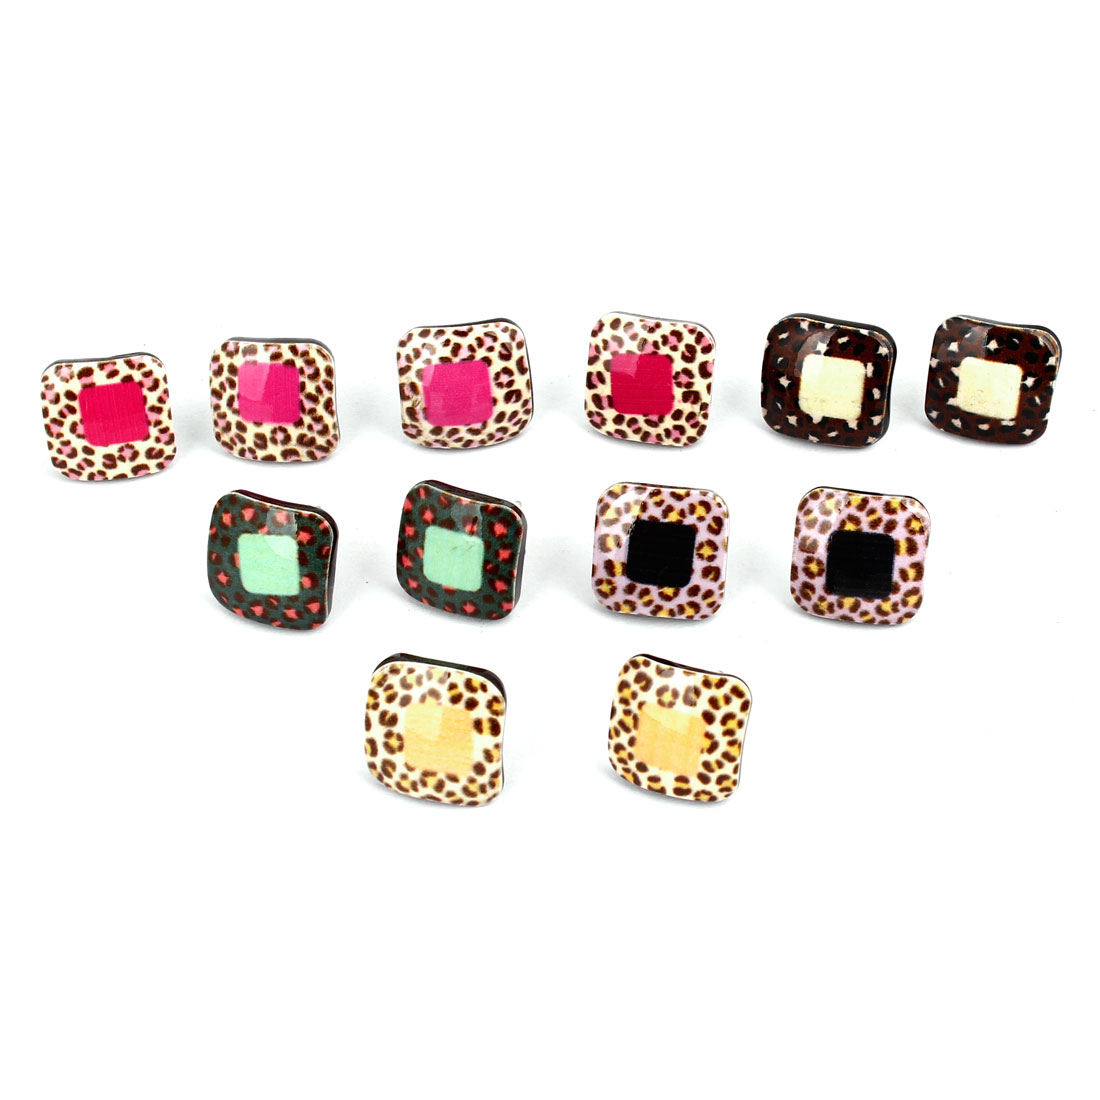 Colorful Leopard Pattern Square Earstuds Studs Earrings 6 Pairs